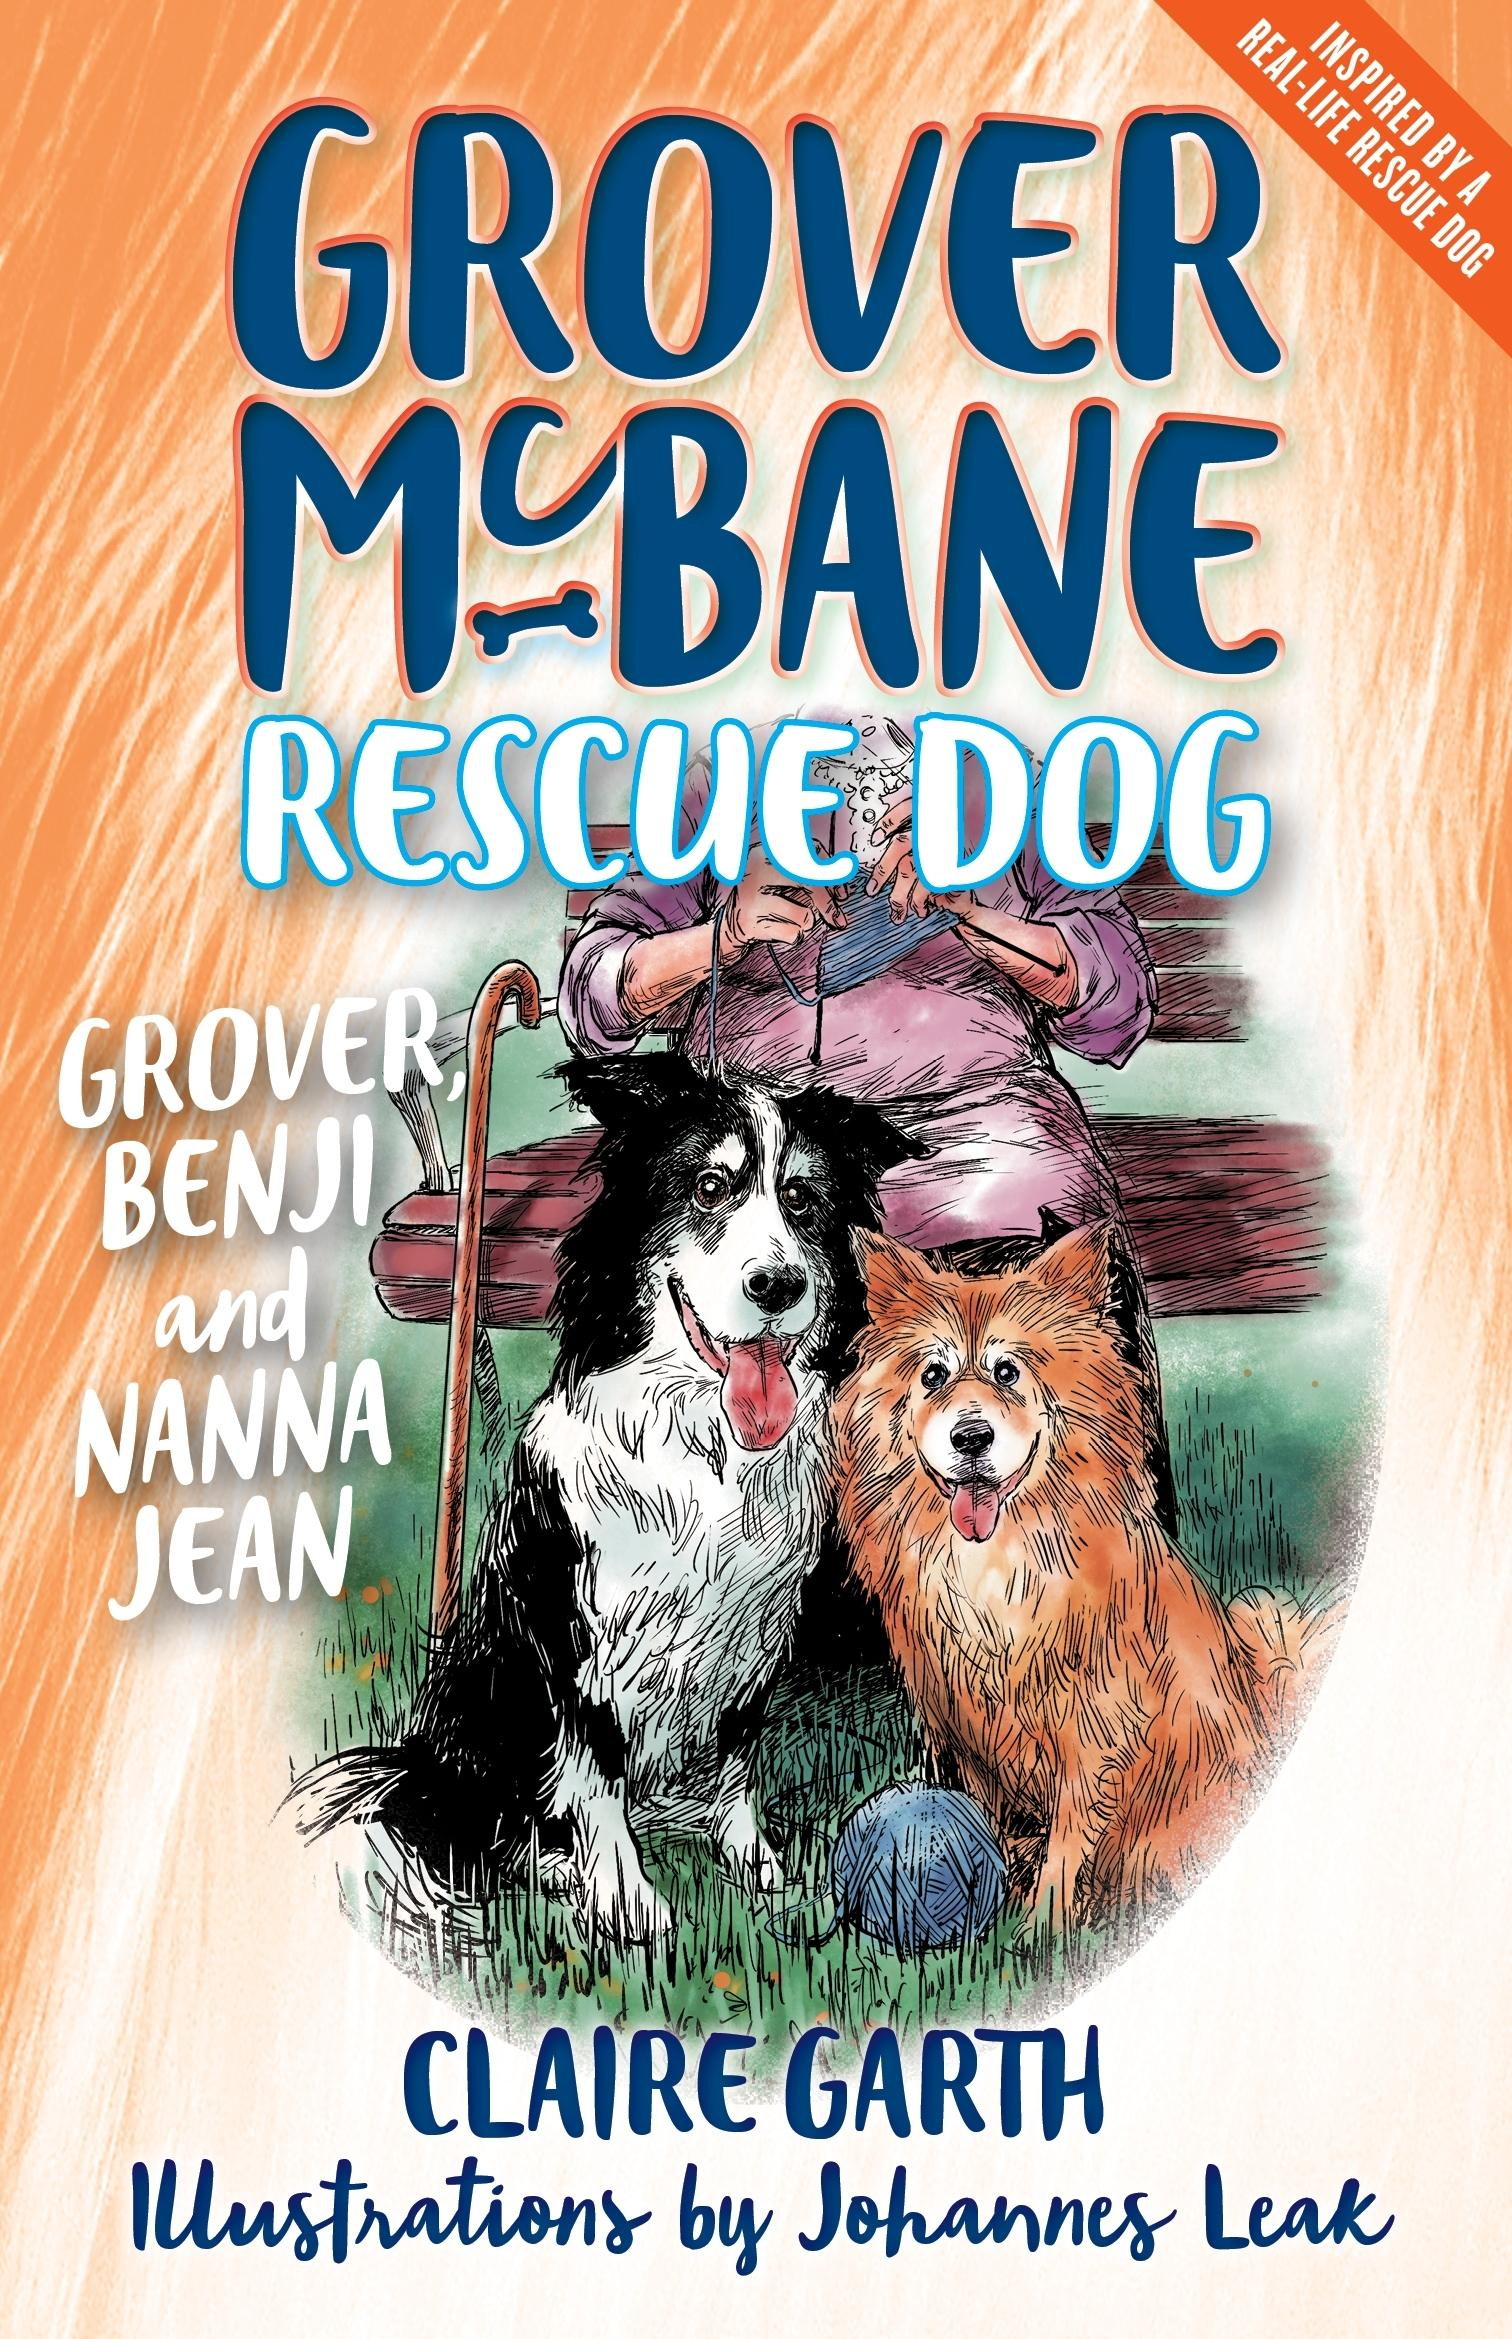 Grover, Benji and Nanna Jean (Grover Mcbane, Rescue Dog Book 3)